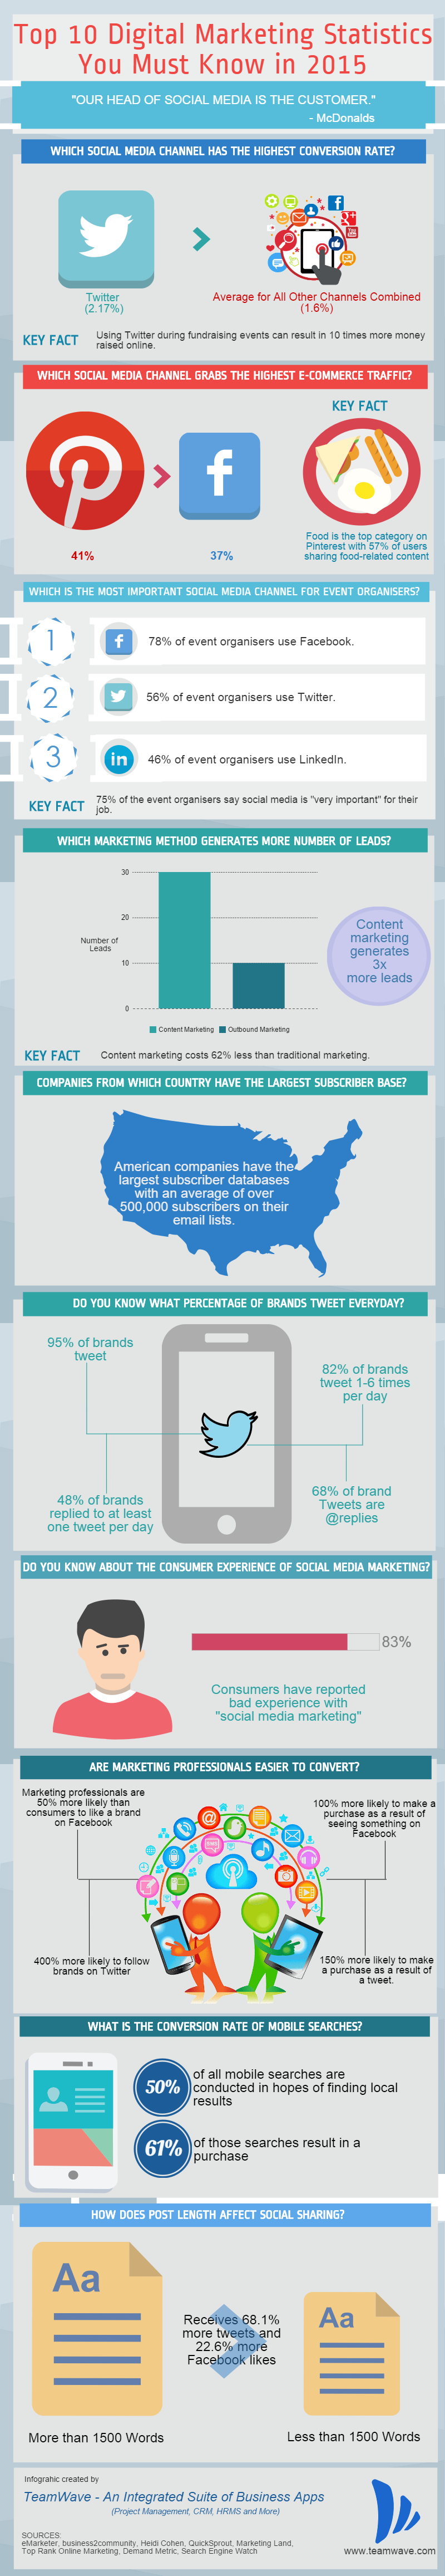 Top Digital Marketing Stats